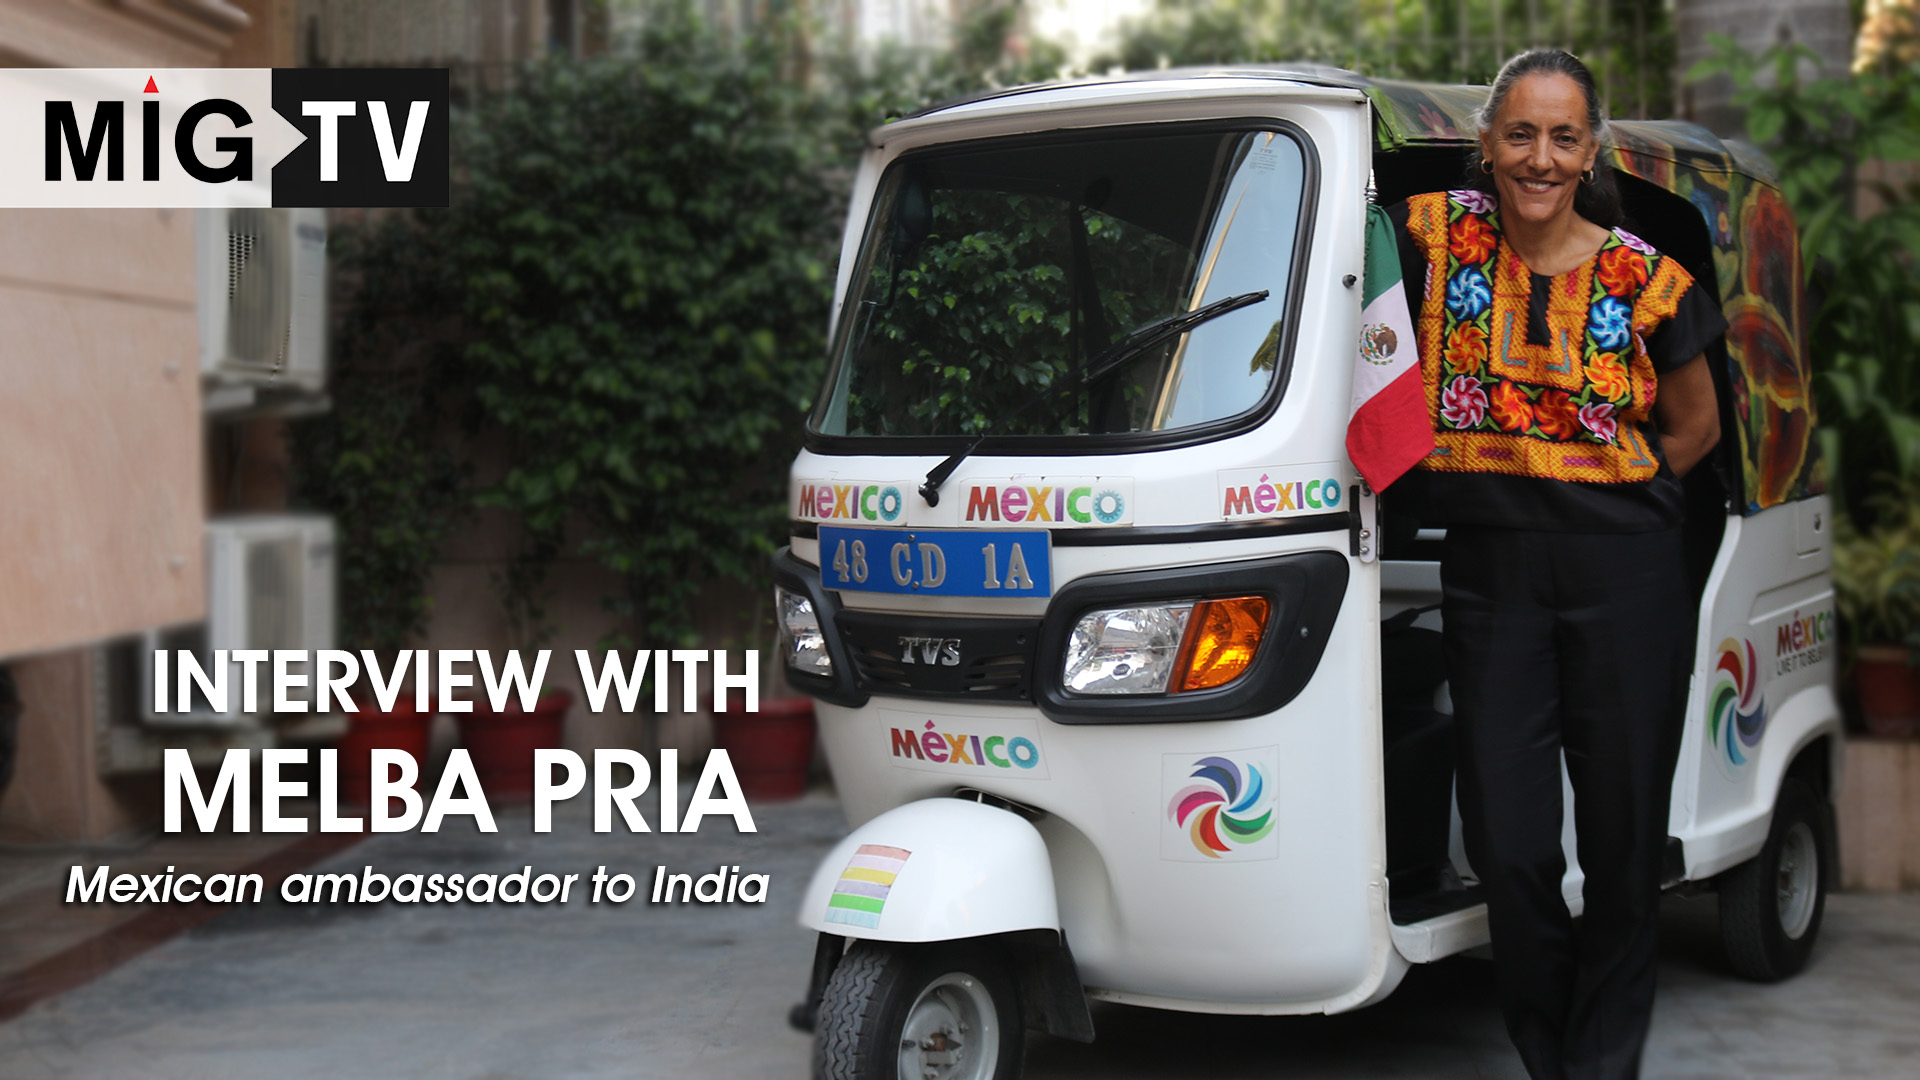 Interview with Melba Pria   Mexican ambassador to India